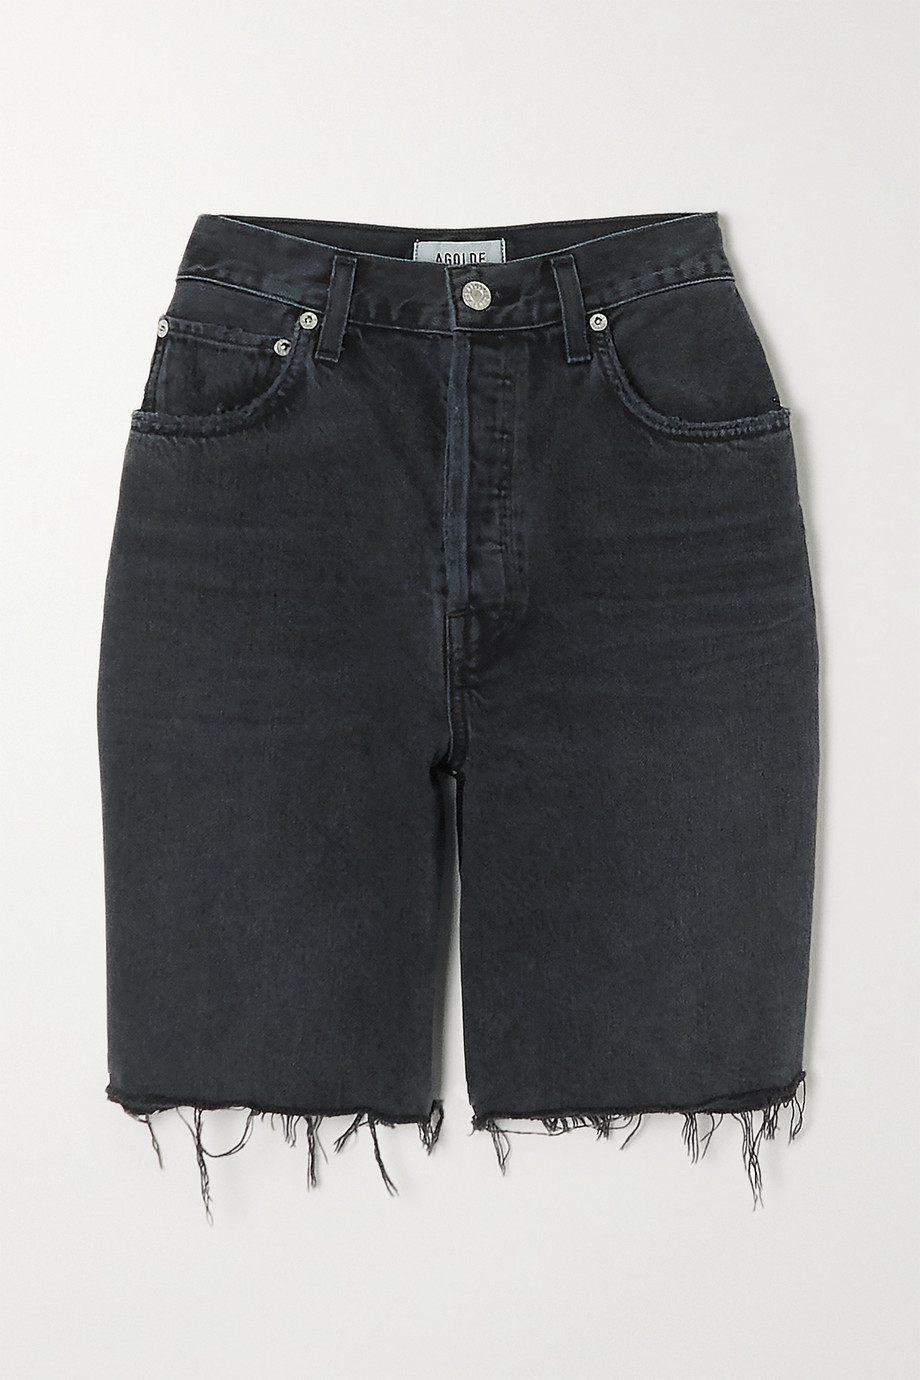 AGOLDE '90s Pinch distressed denim shorts